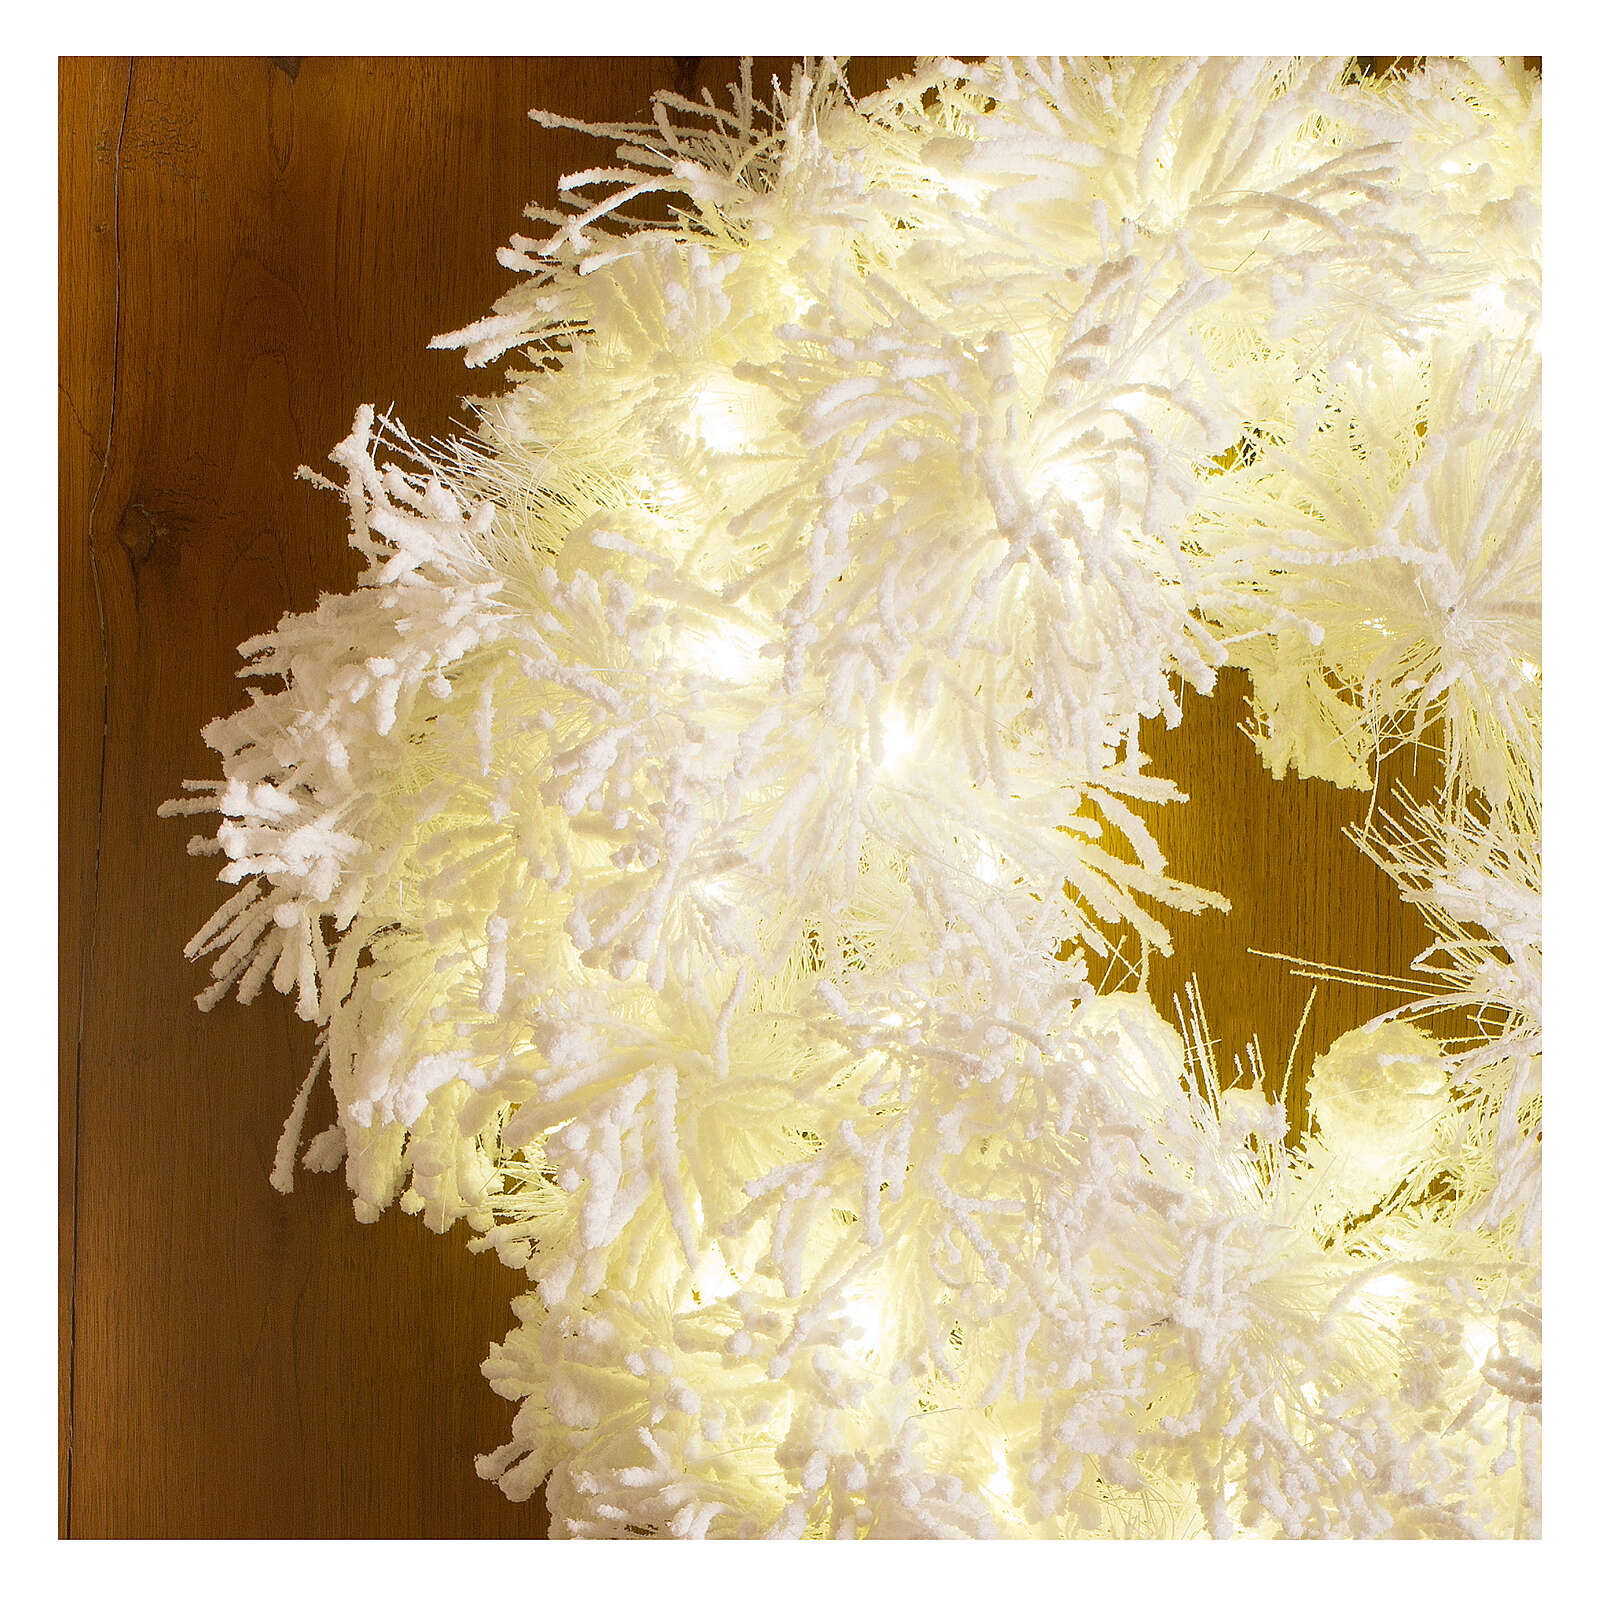 STOCK Korona adwentowa White Cloud 100 led średnica 75 cm 3